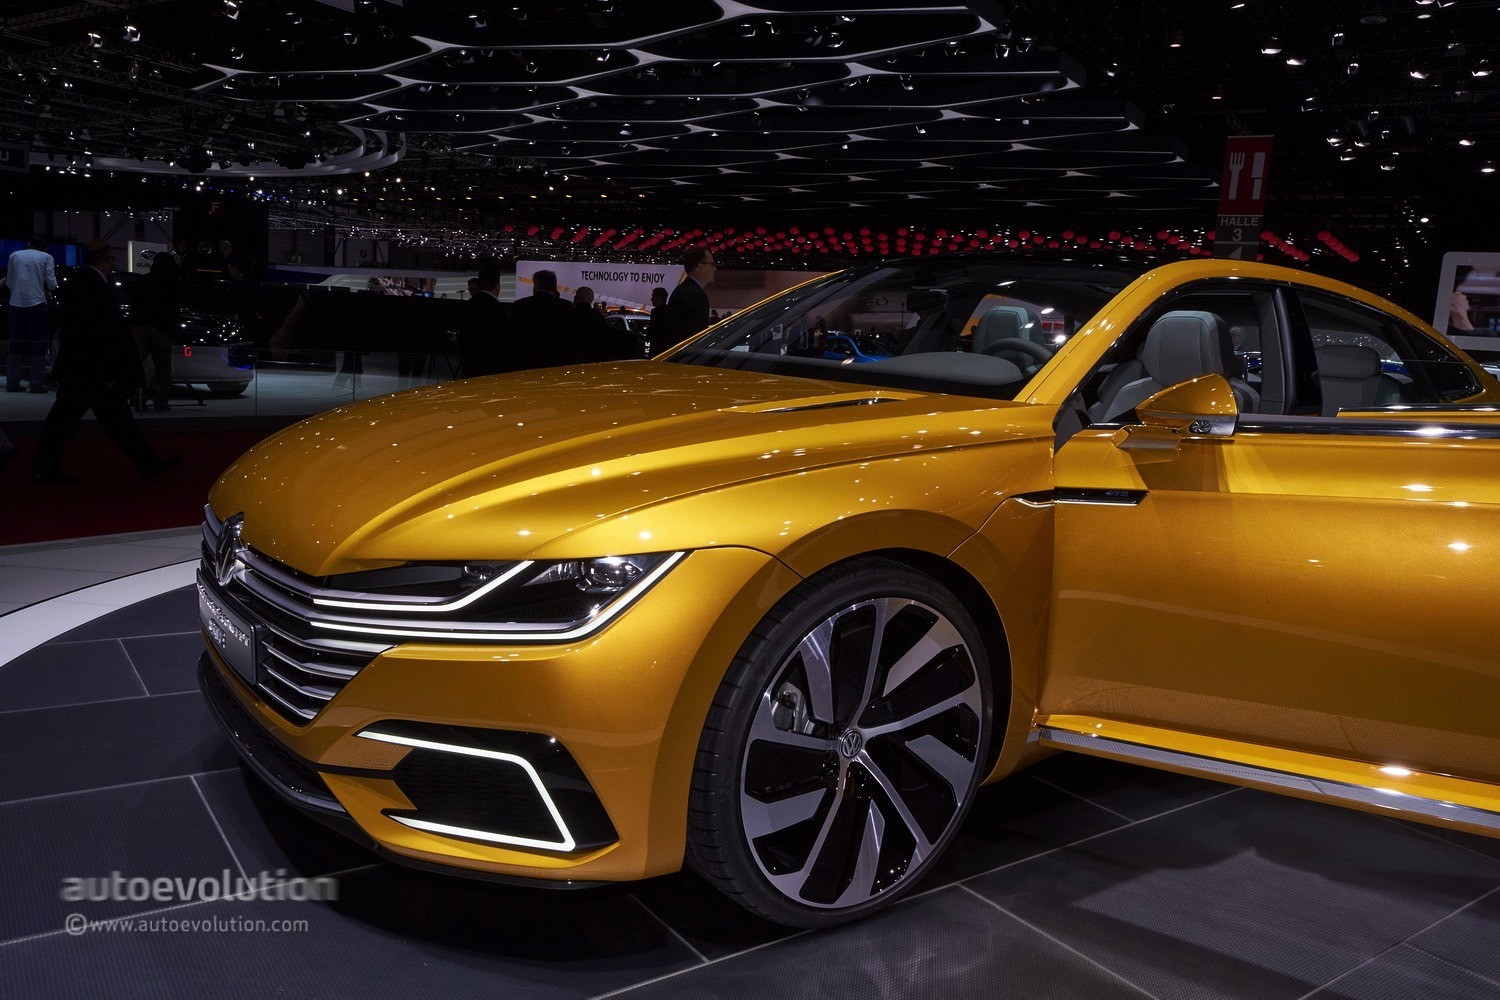 Volkswagen's Arteon Four-Door Coupe Could Get a SEAT Version - autoevolution